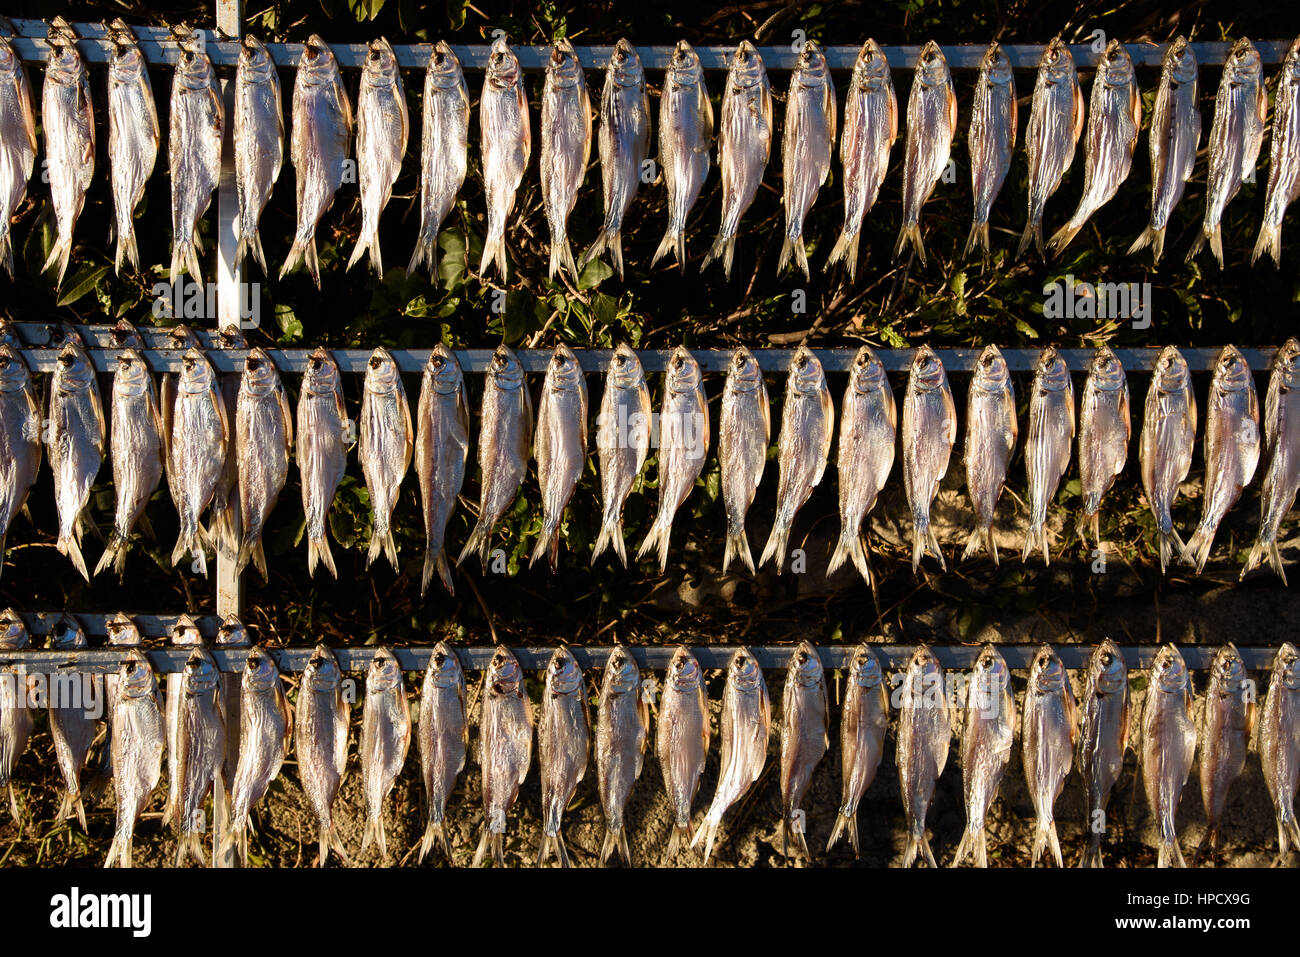 shad exposed to the sun to dry - Stock Image